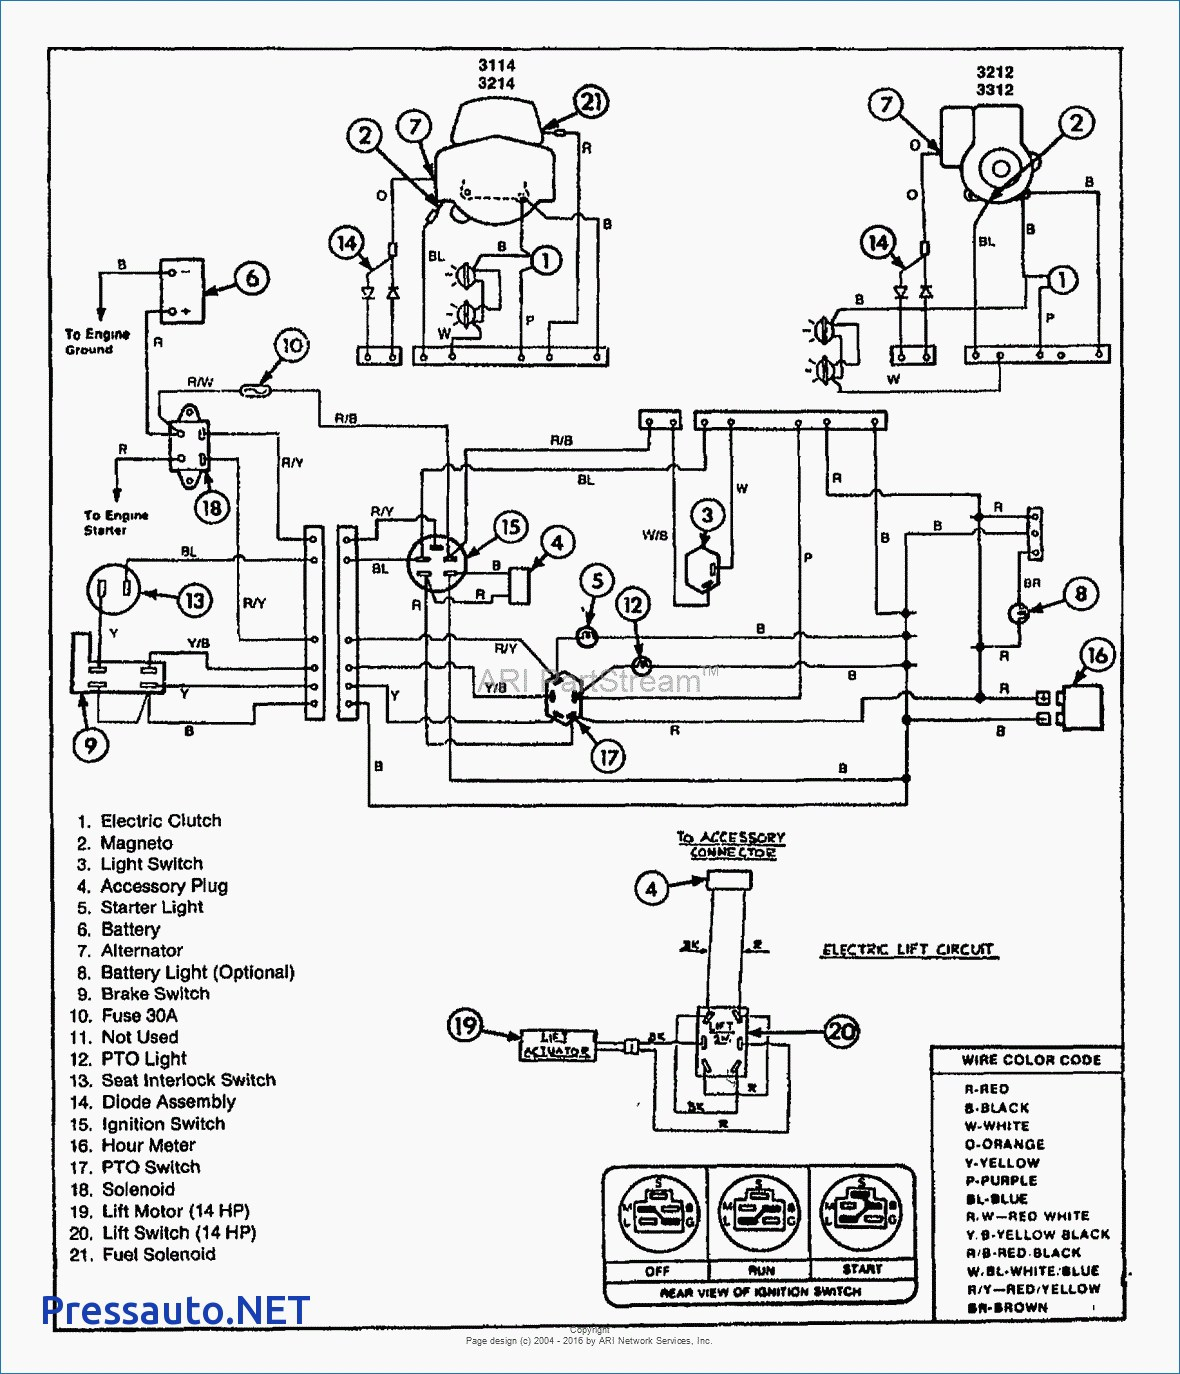 Collection Of 30a 250v Plug Wiring Diagram Sample